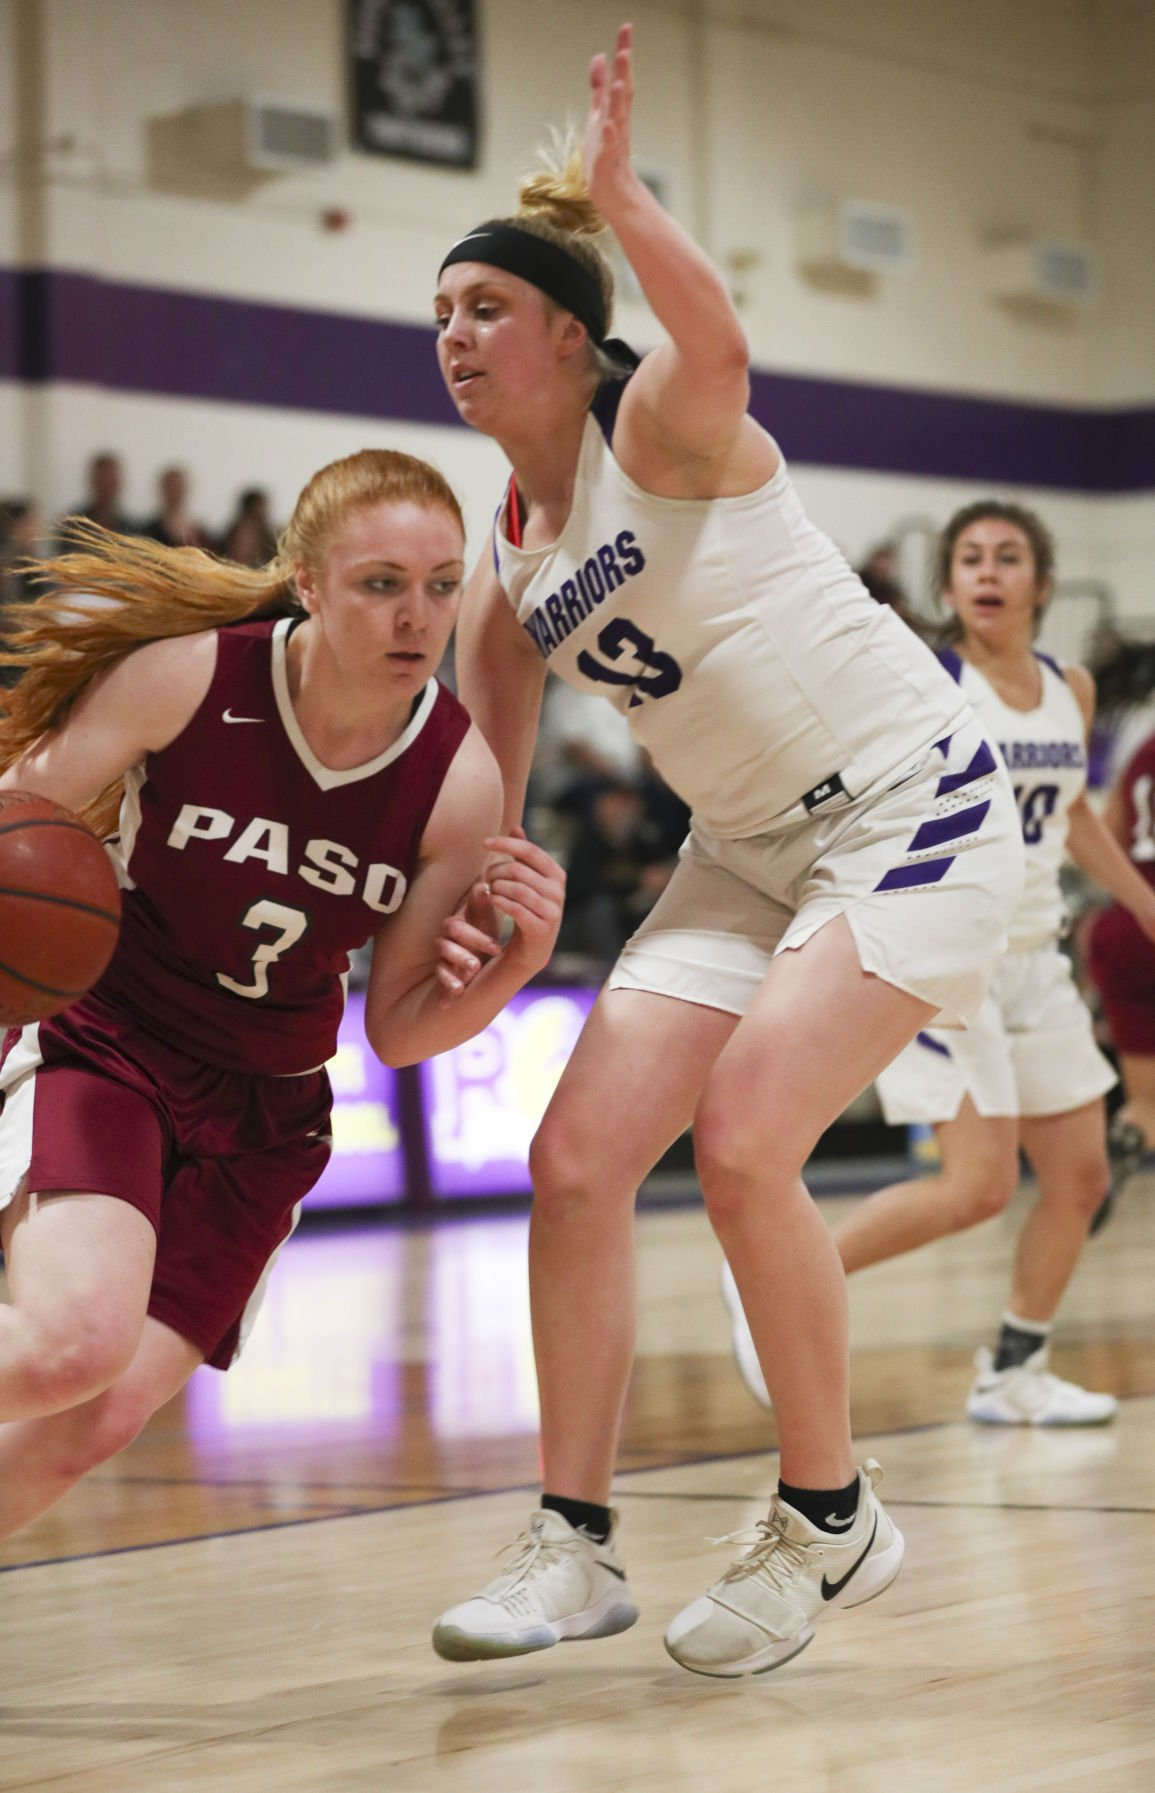 PAC 8 Girls Basketball Righetti vs Paso Robles